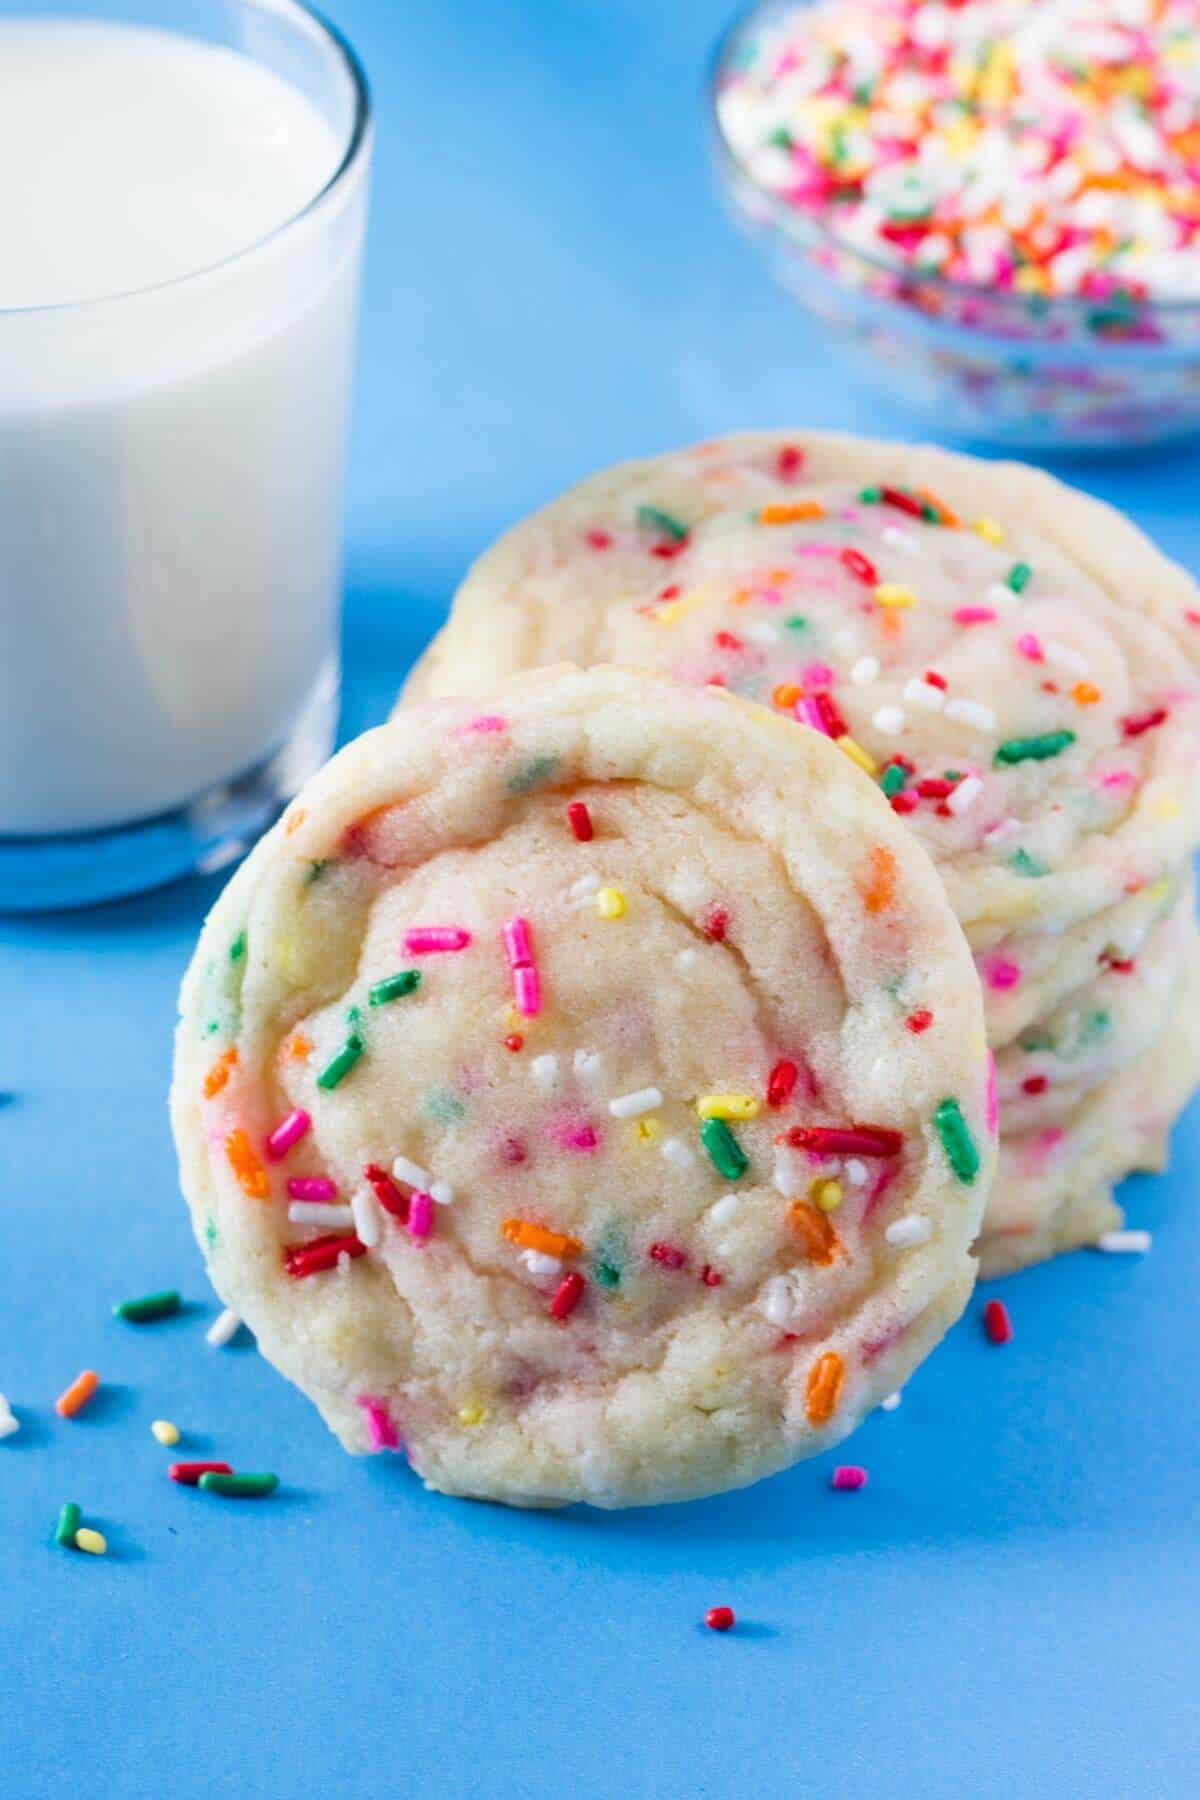 A stack of funfetti cookies with a glass of milk and a bowl of sprinkles.